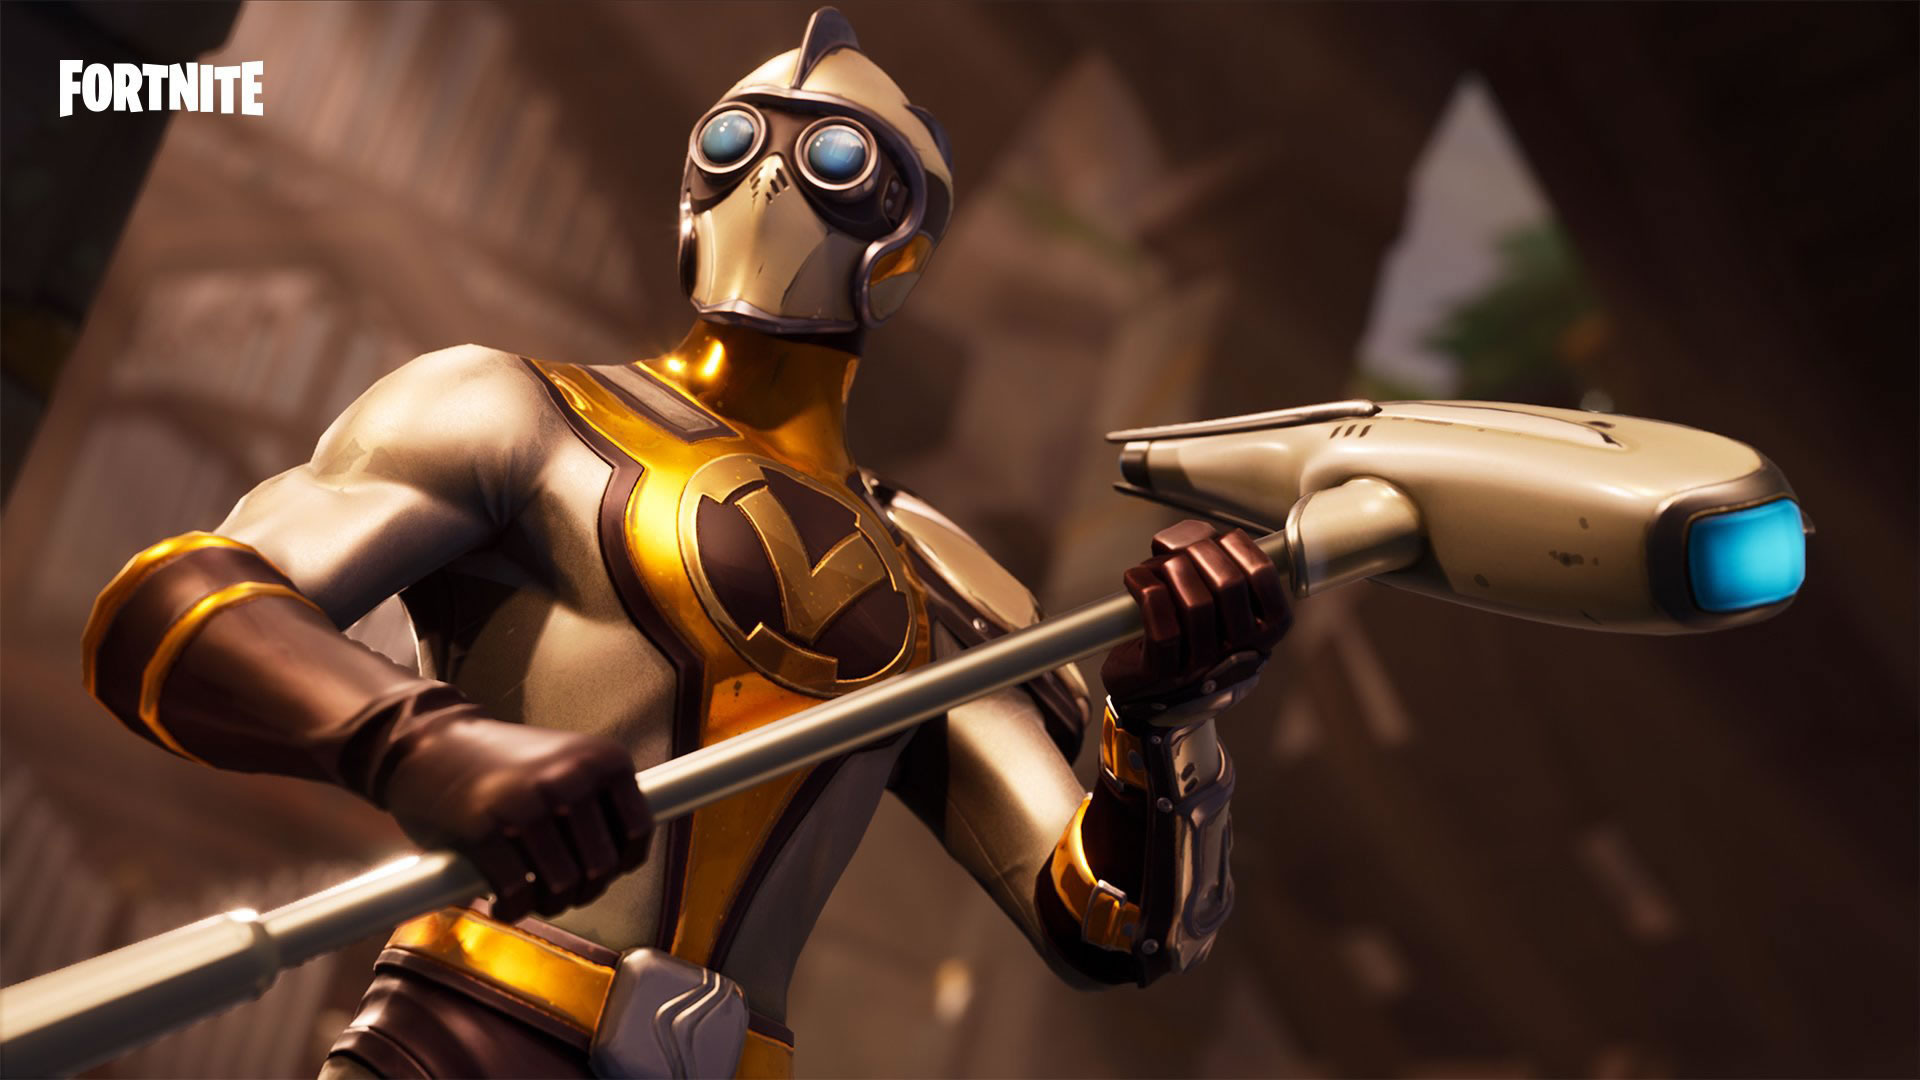 download wallpaper: Fortnite skin – Venturion wallpaper